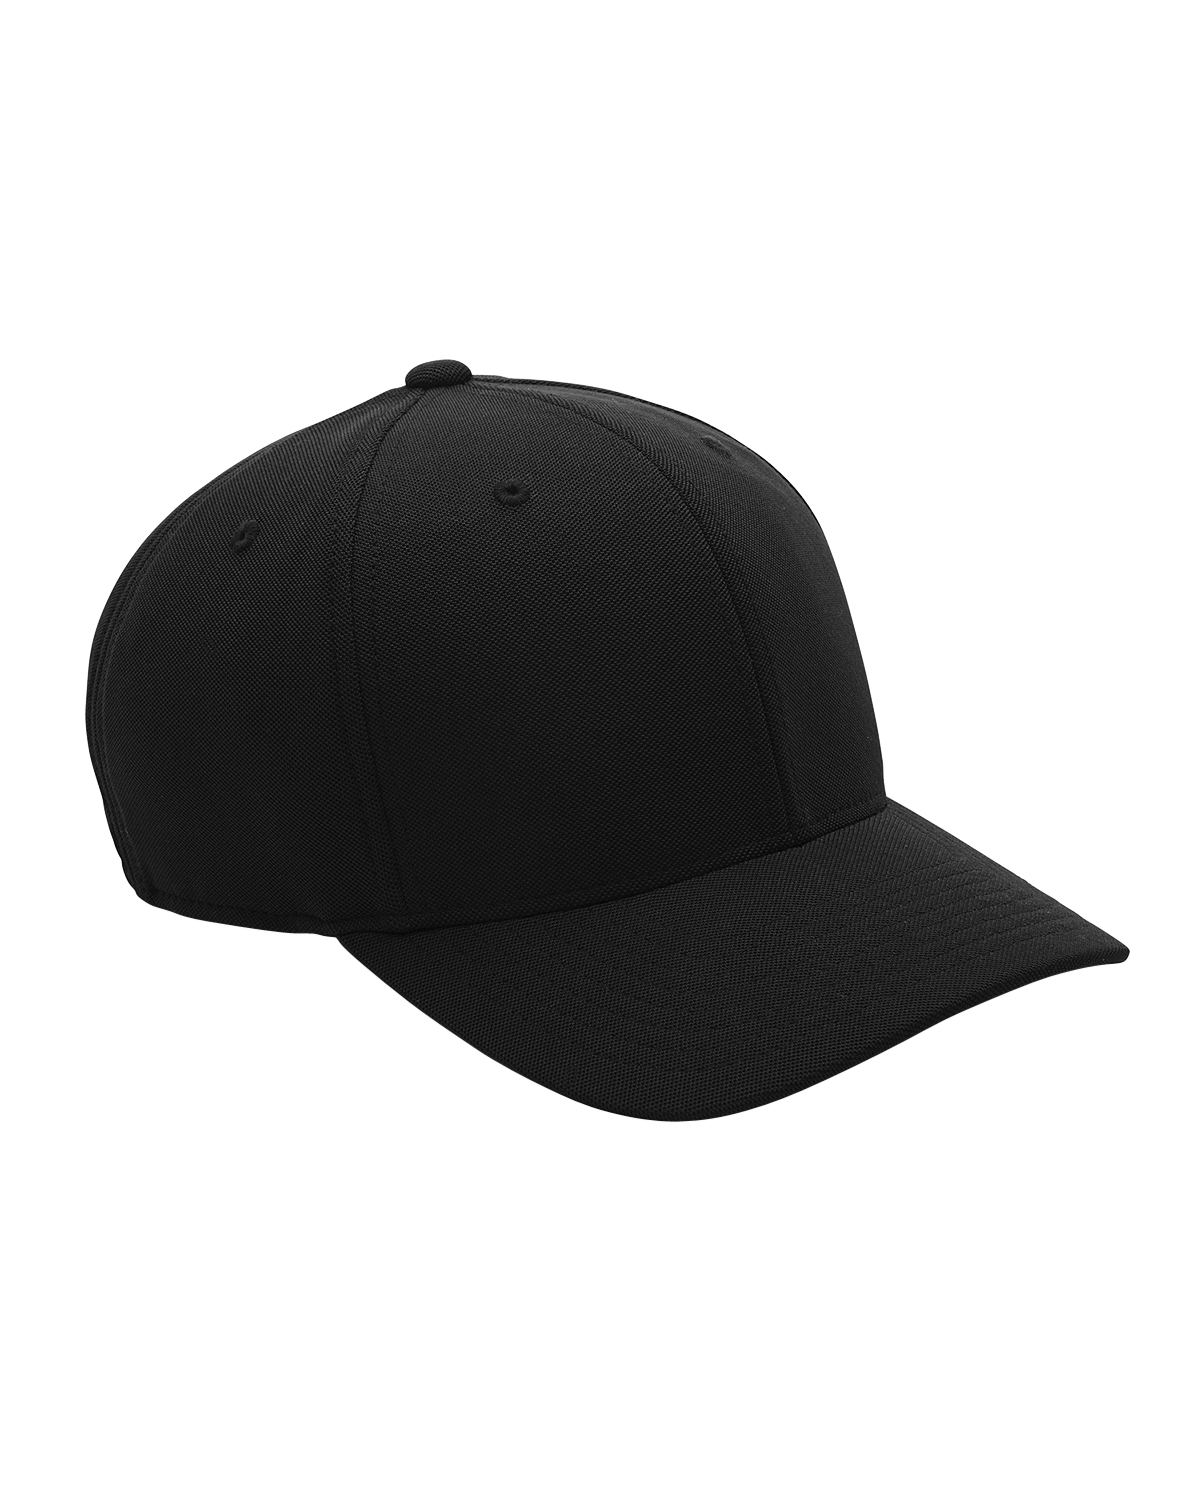 Flexfit ATB100 - Cool & Dry Mini Pique Performance Cap